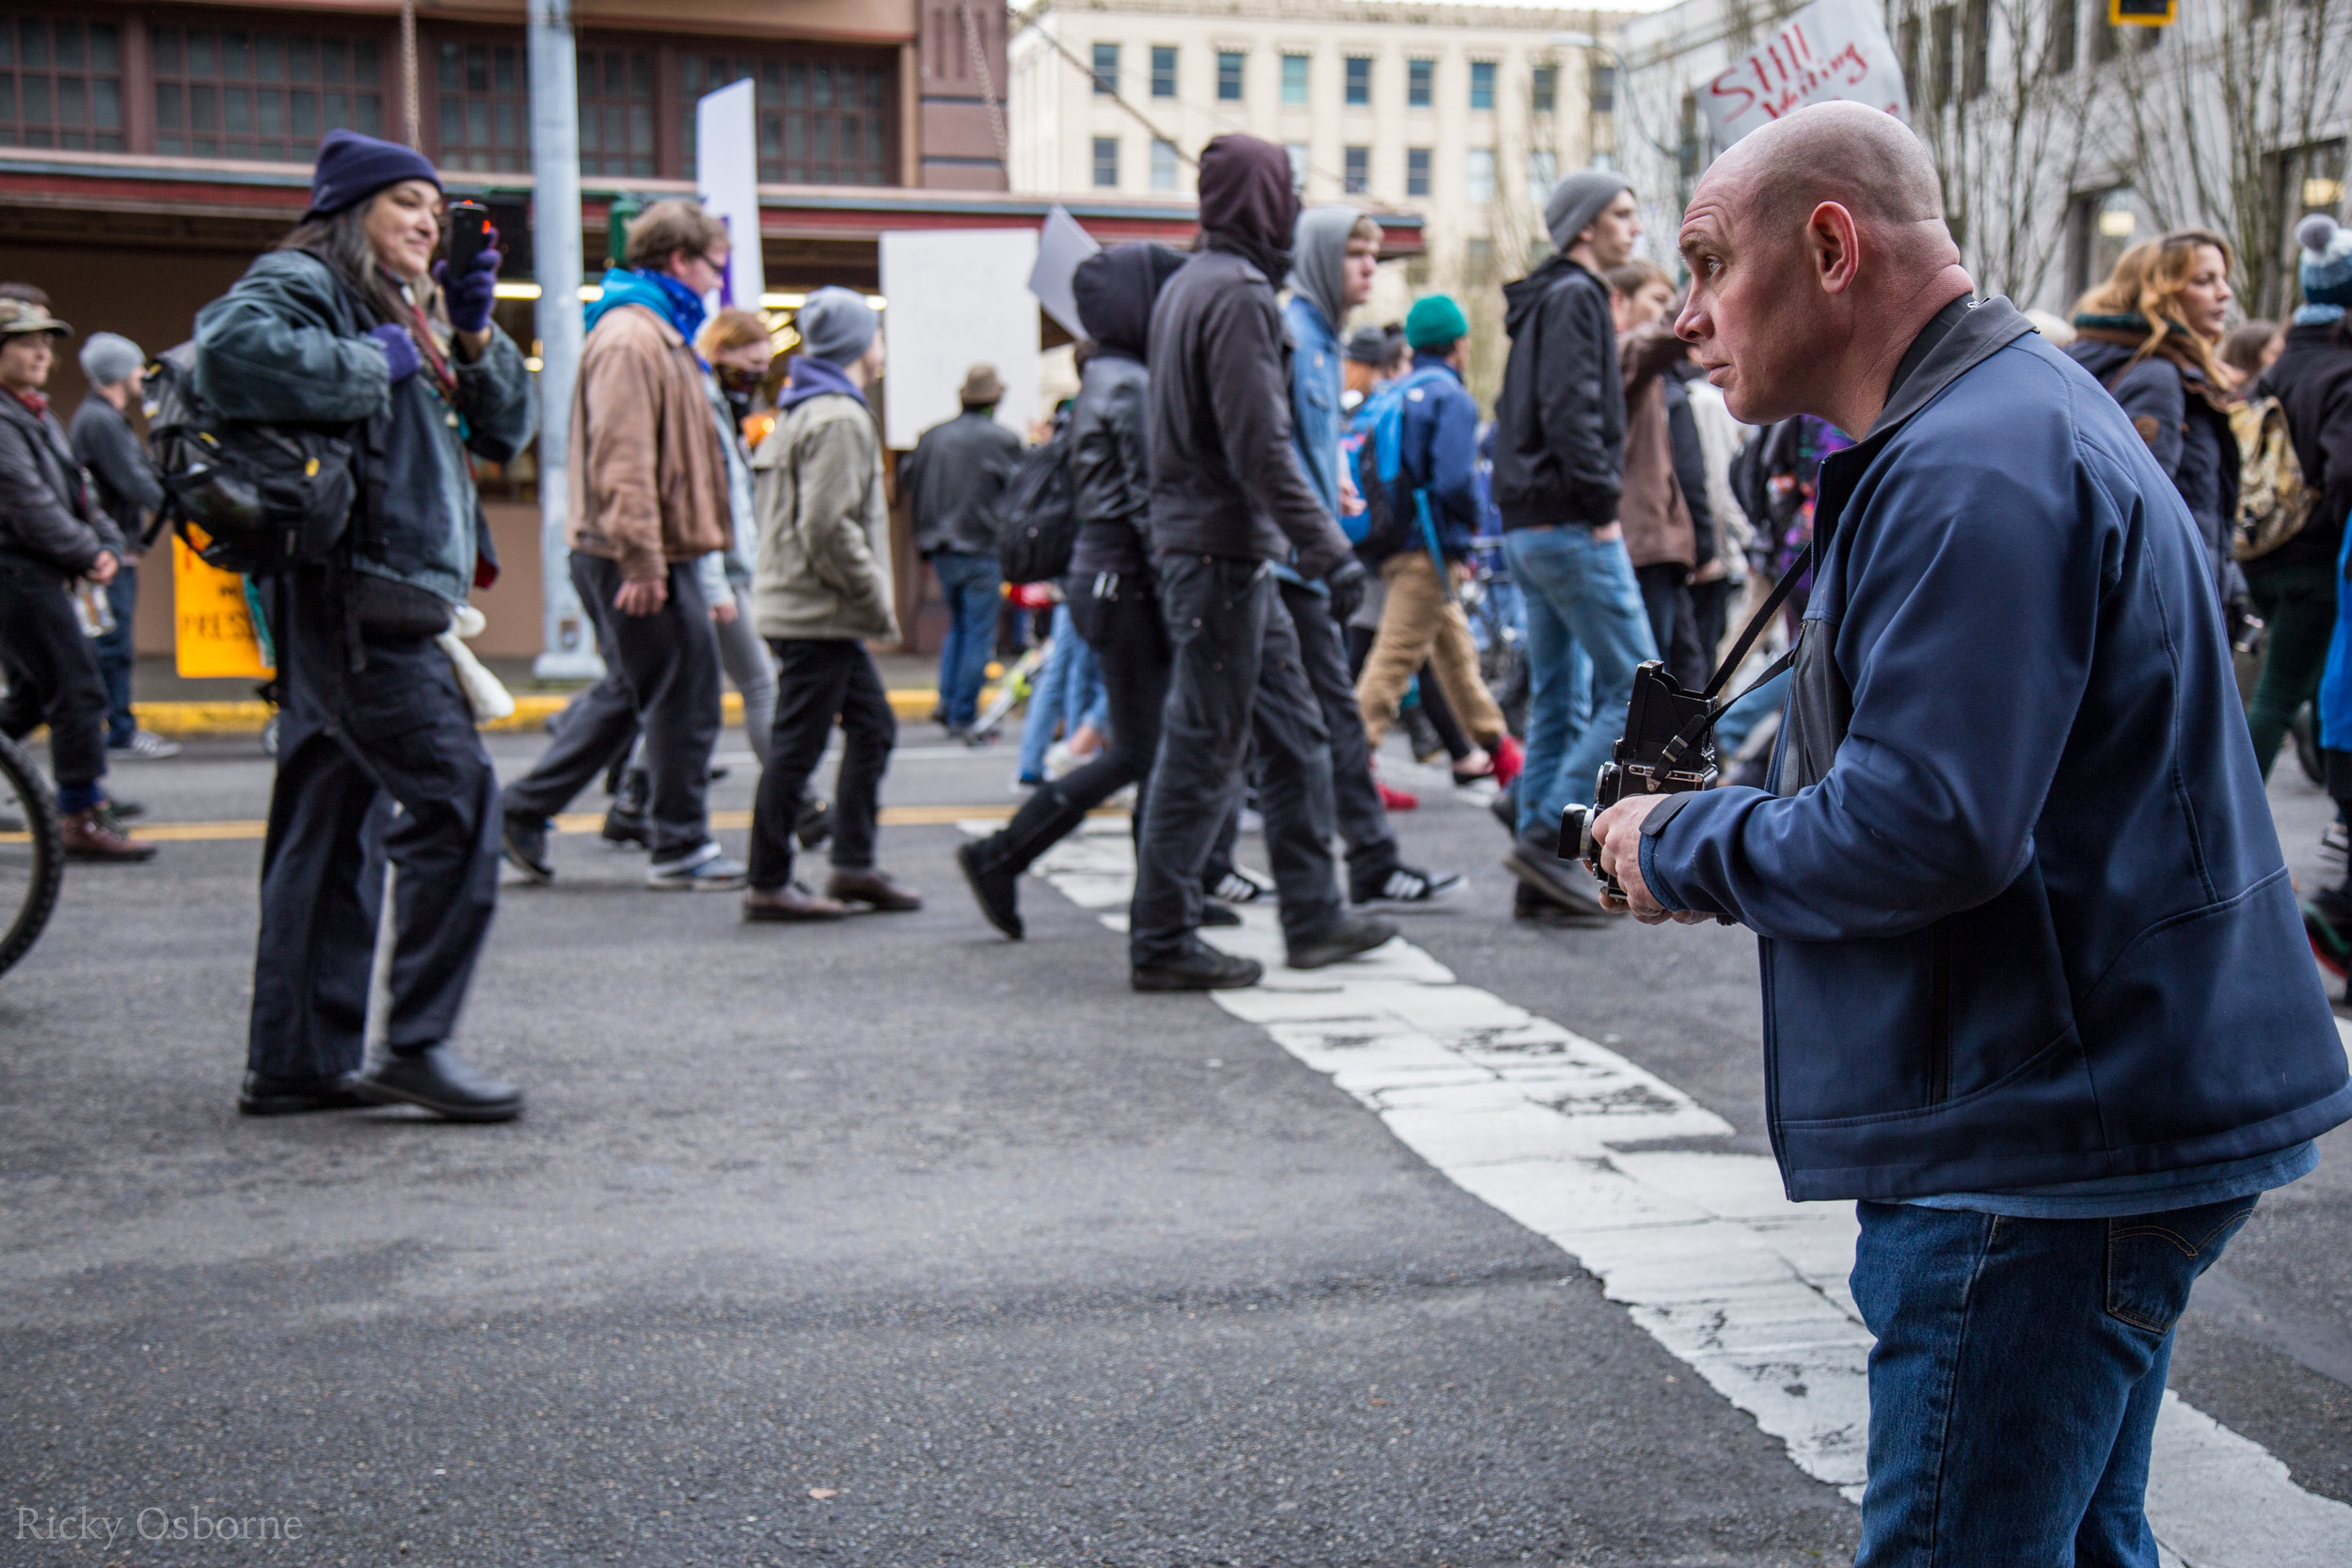 A photographer uses a medium format film camera to shoot a scene from the march.